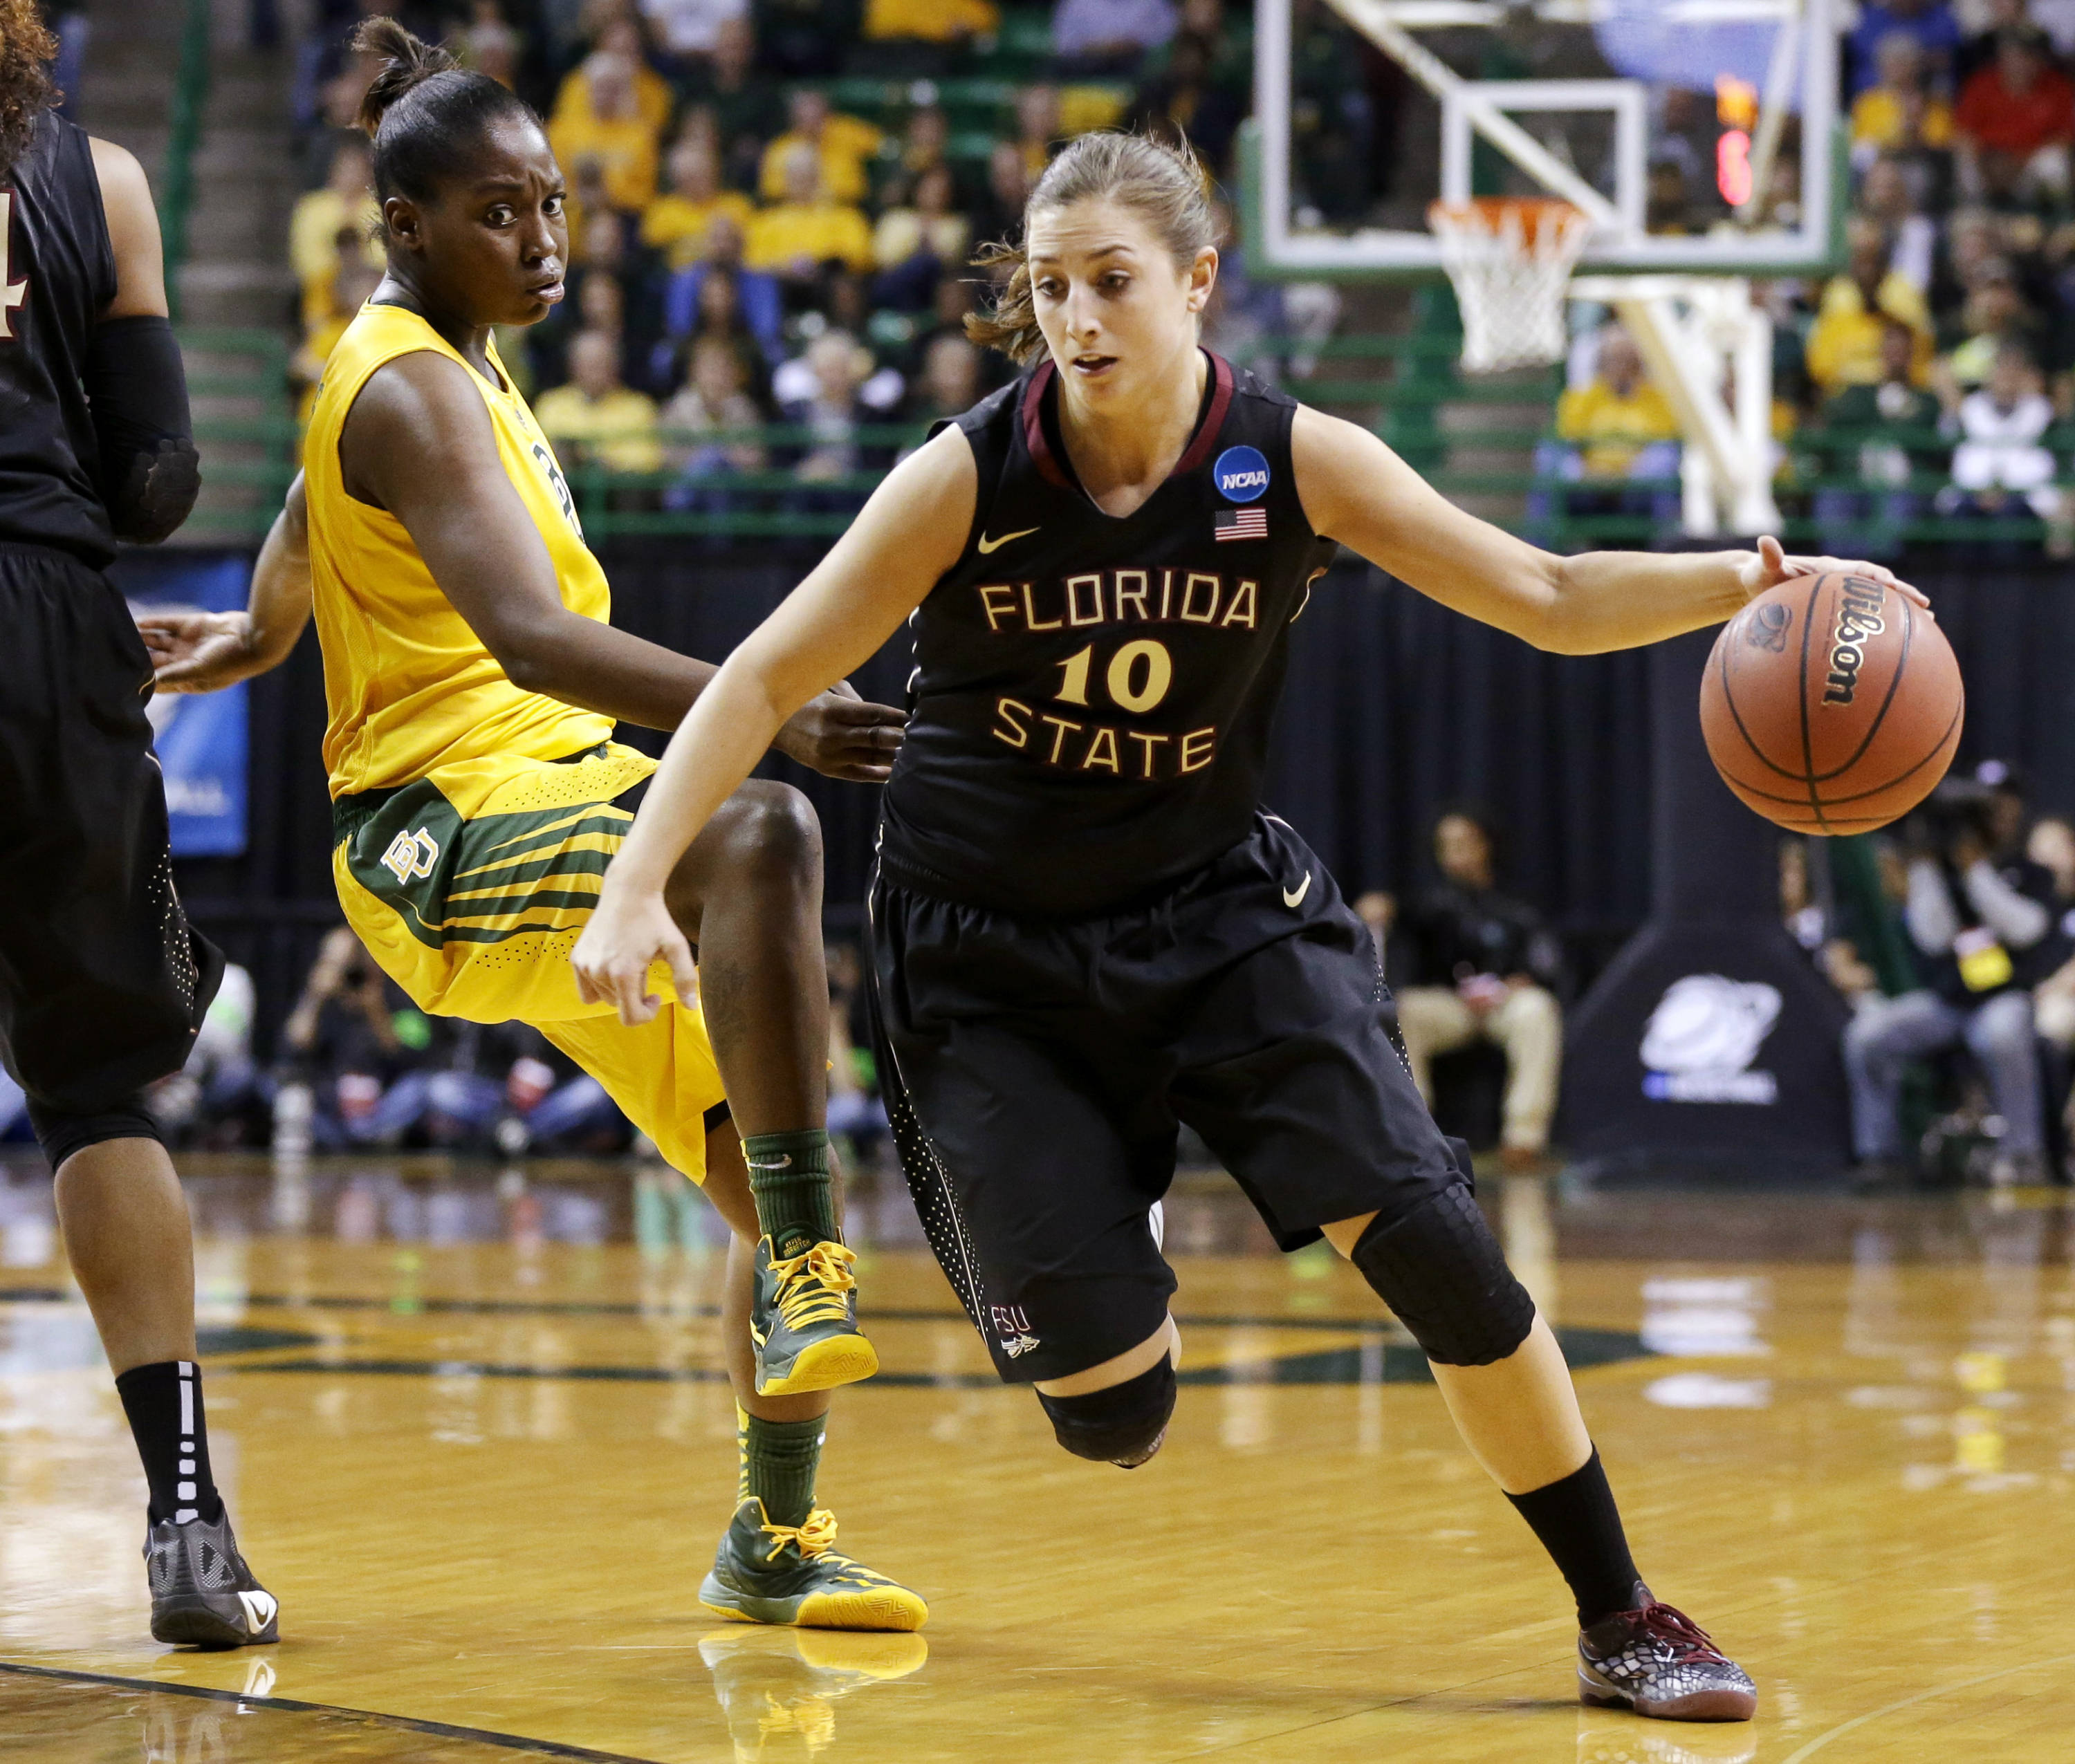 Florida State's Leonor Rodriguez (10) drives past Baylor's Kimetria Hayden, left, in the first half of a second-round game in the women's NCAA college basketball tournament, Tuesday, March 26, 2013, in Waco, Texas. (AP Photo/Tony Gutierrez)